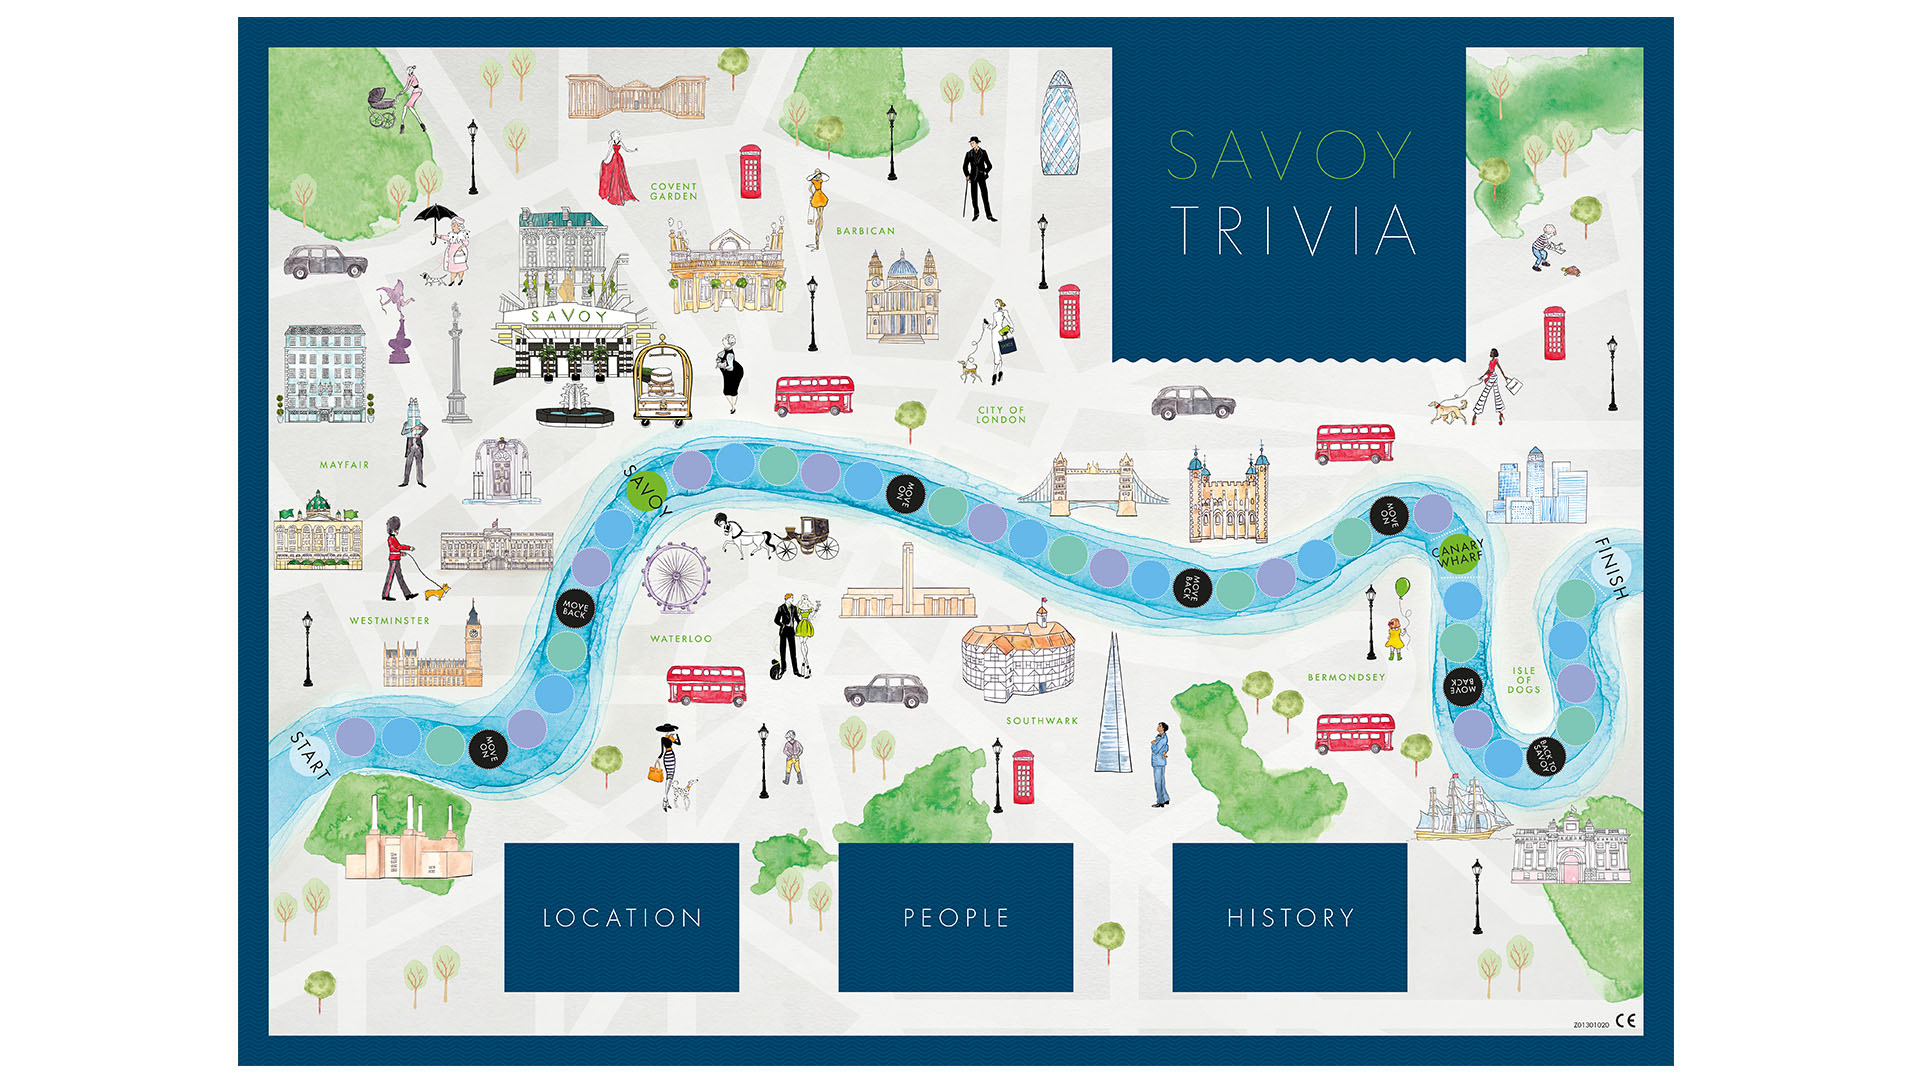 Savoy Trivia - The Savoy Board Game